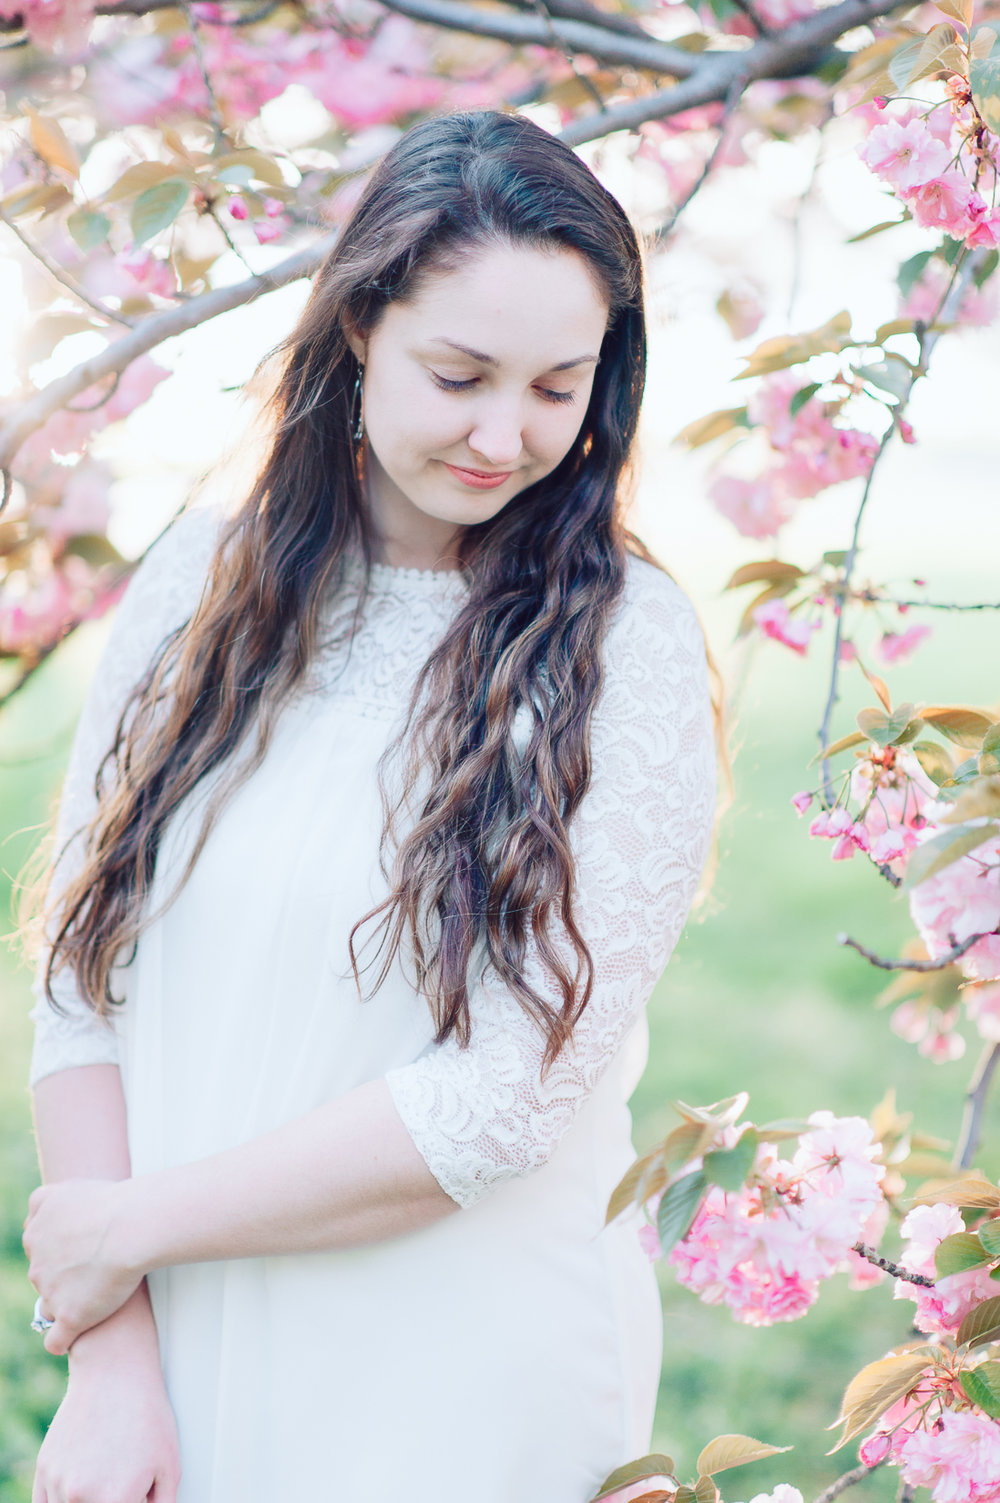 engagement_cherryblossoms_virginiaweddingphotographer_JanieHunter (9).jpg